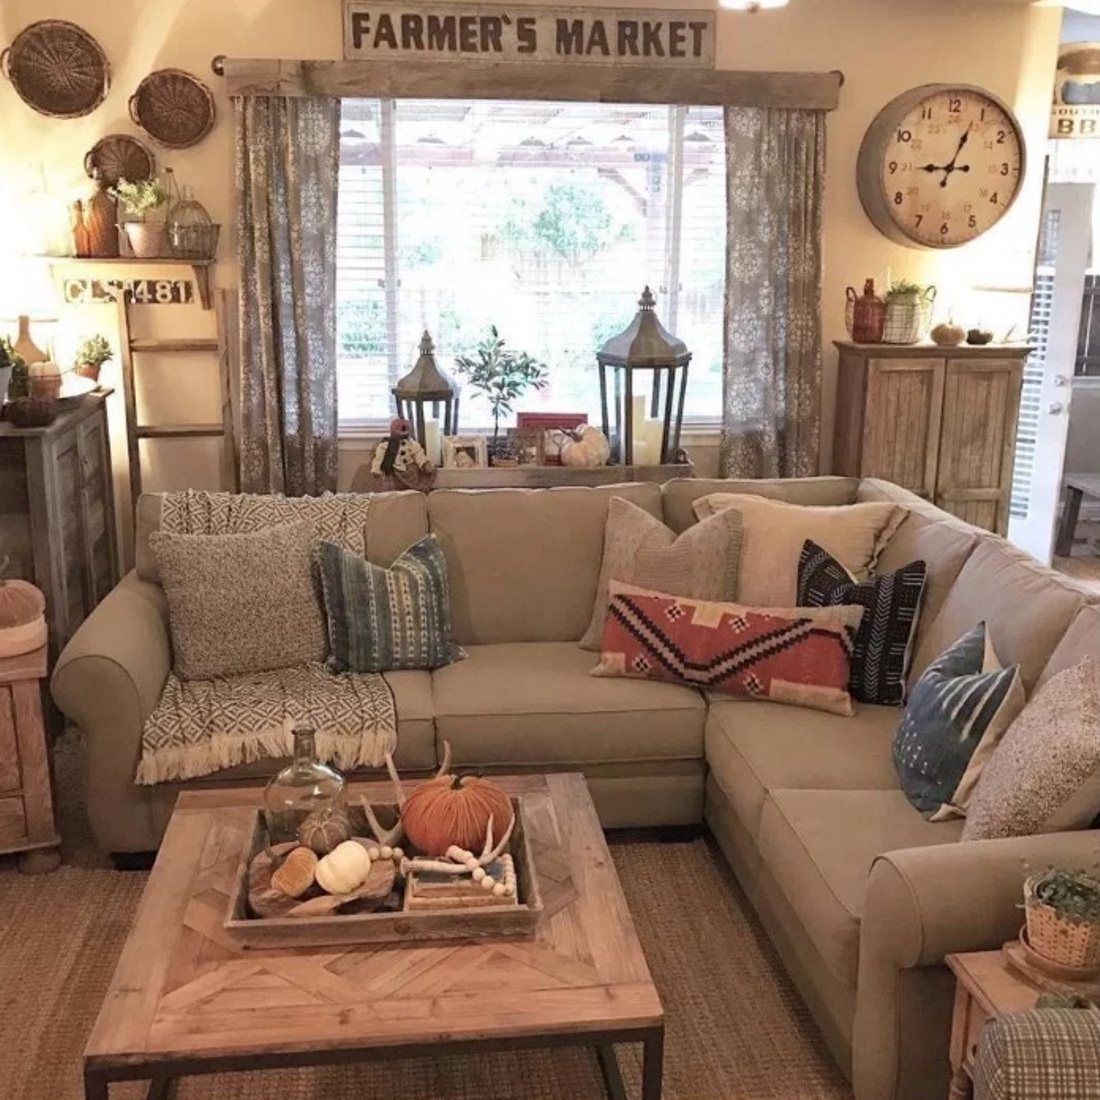 Cool 4 Simple Rustic Farmhouse Living Room Decor Ideas | My Home Decor Guide throughout Living Room Themes